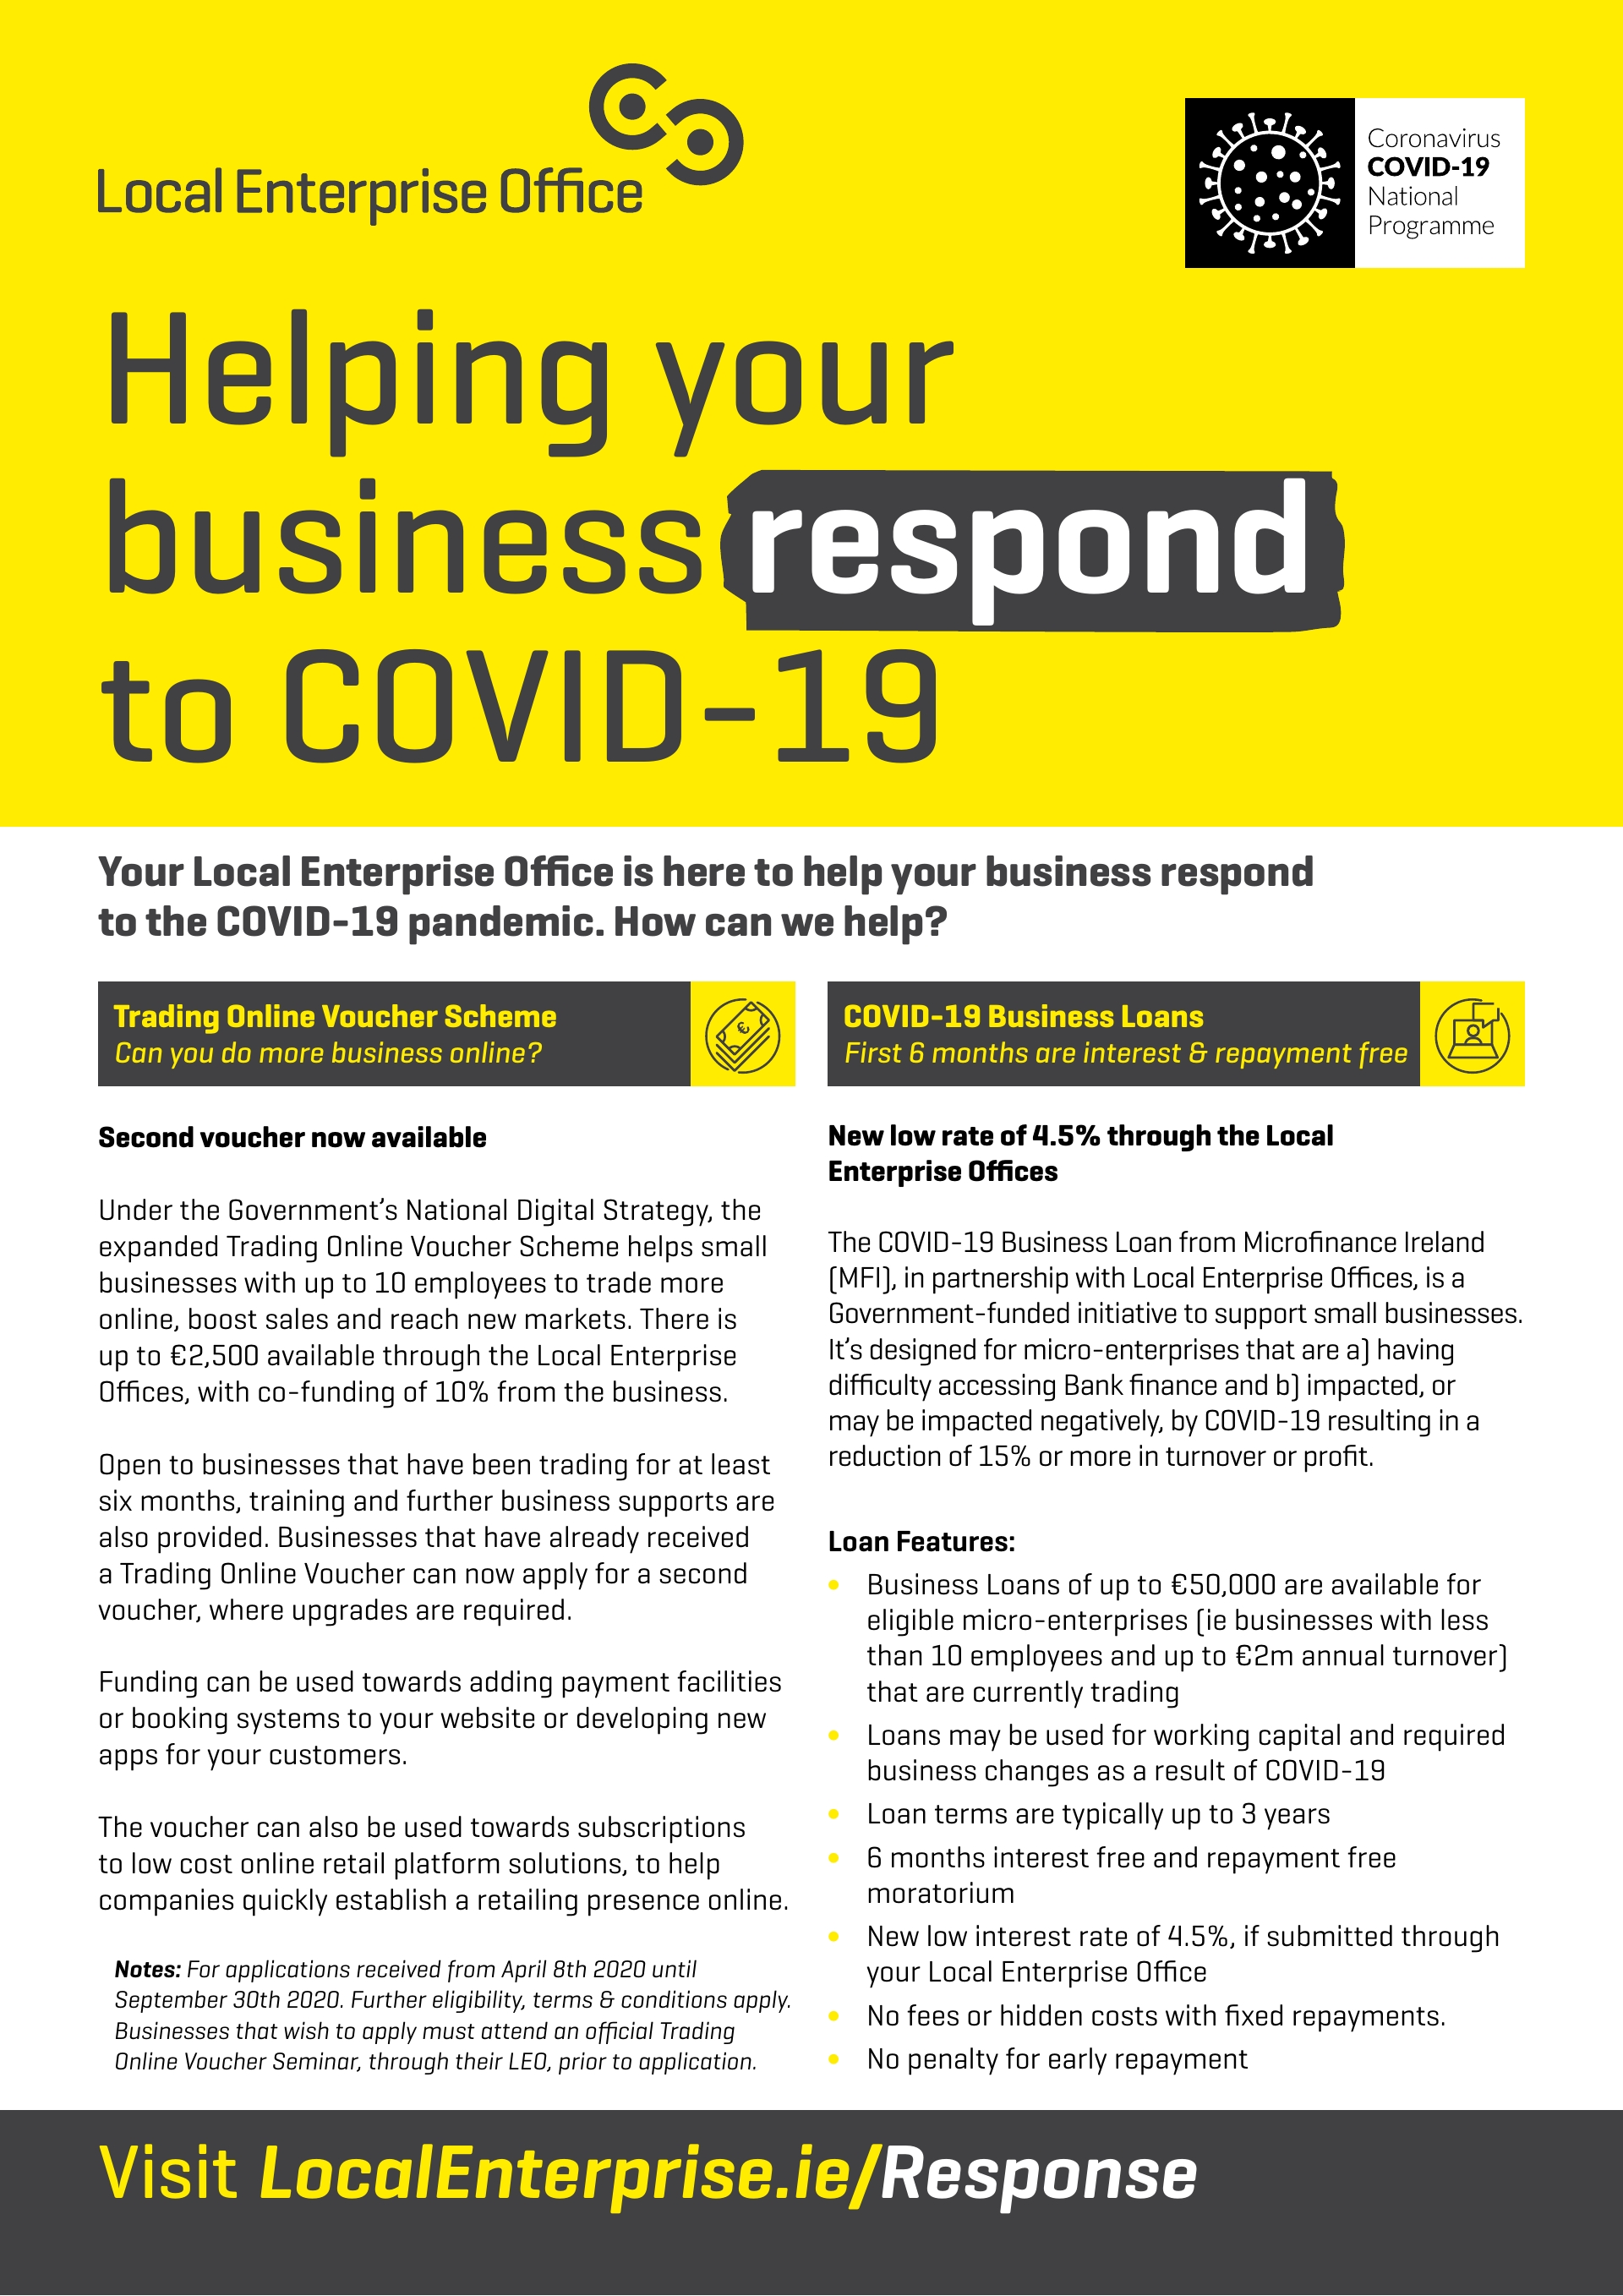 Your Local Enterprise Office is here to help your business respond  to the COVID-19 pandemic. How can we help?